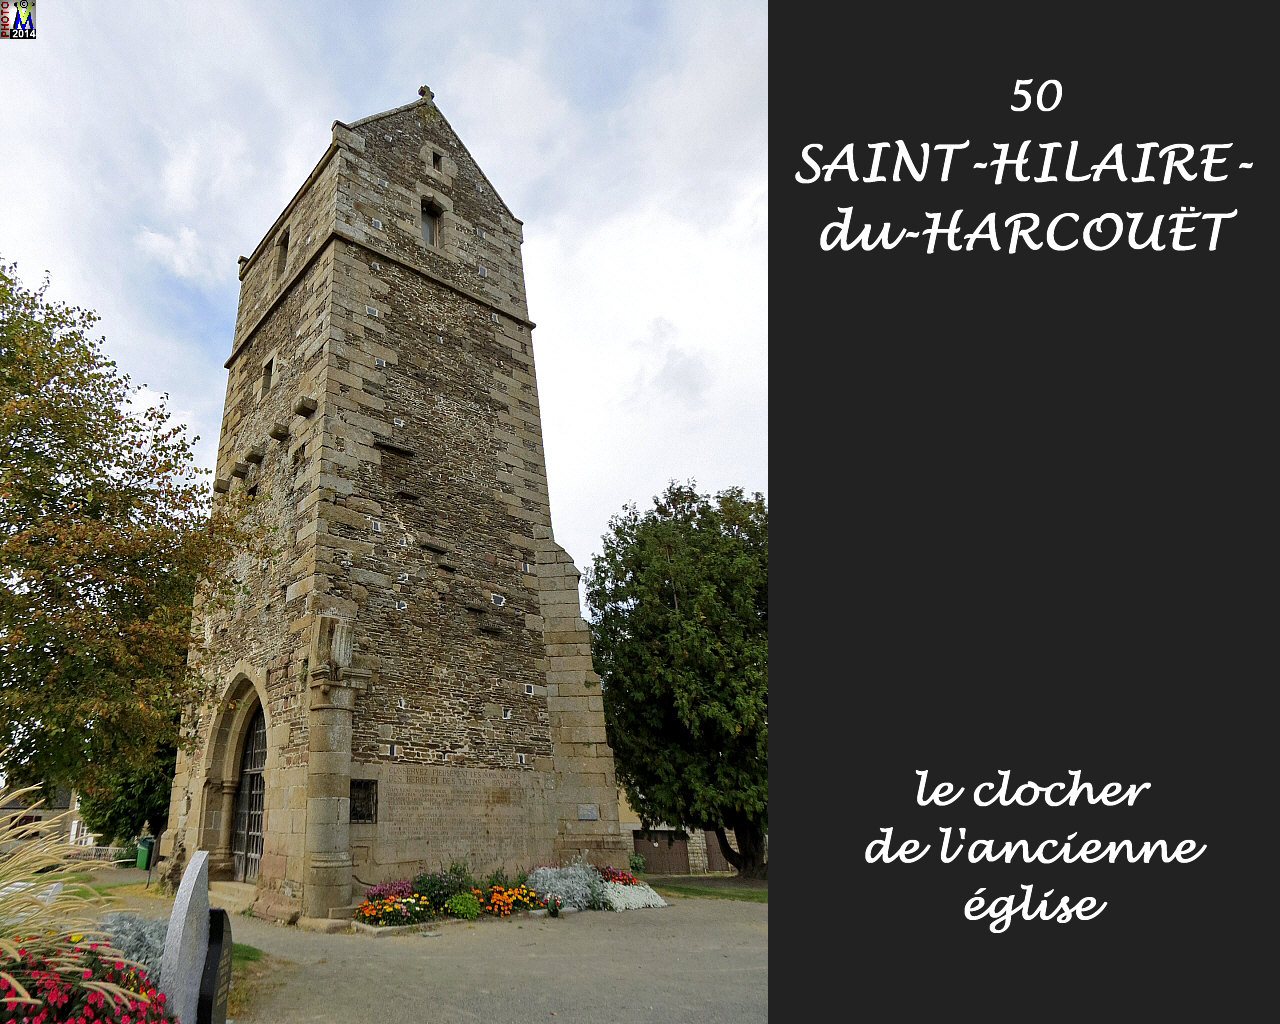 50StHILAIRE-HARCOUET_clocher_102.jpg